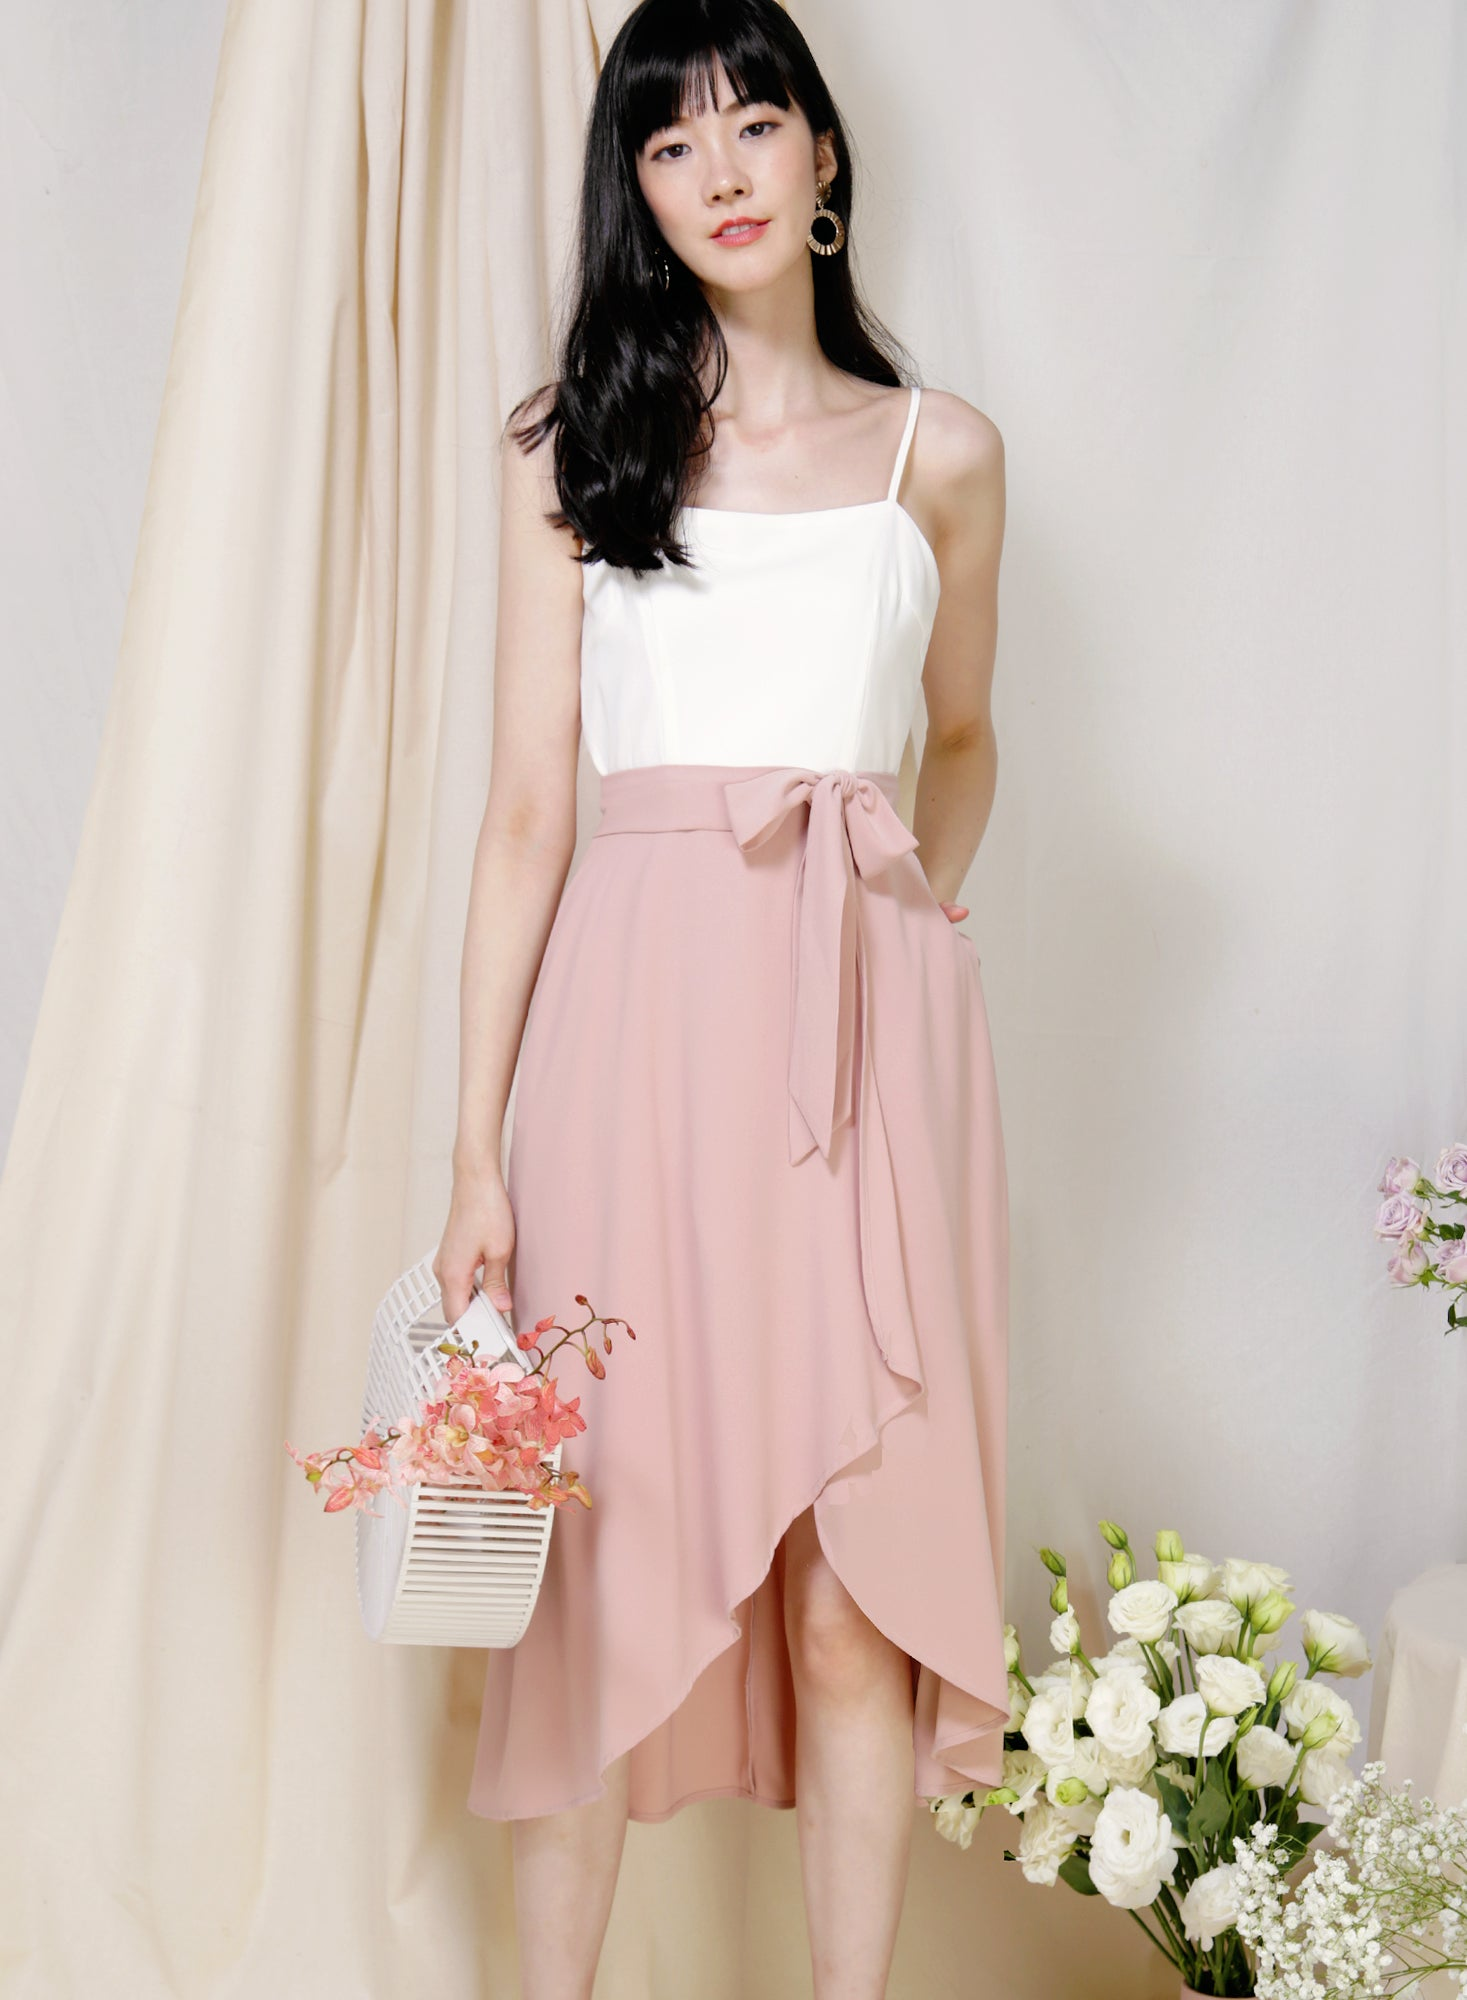 Memory Contrast Wrap Hem Dress (White/Blush) at $ 43.50 only sold at And Well Dressed Online Fashion Store Singapore